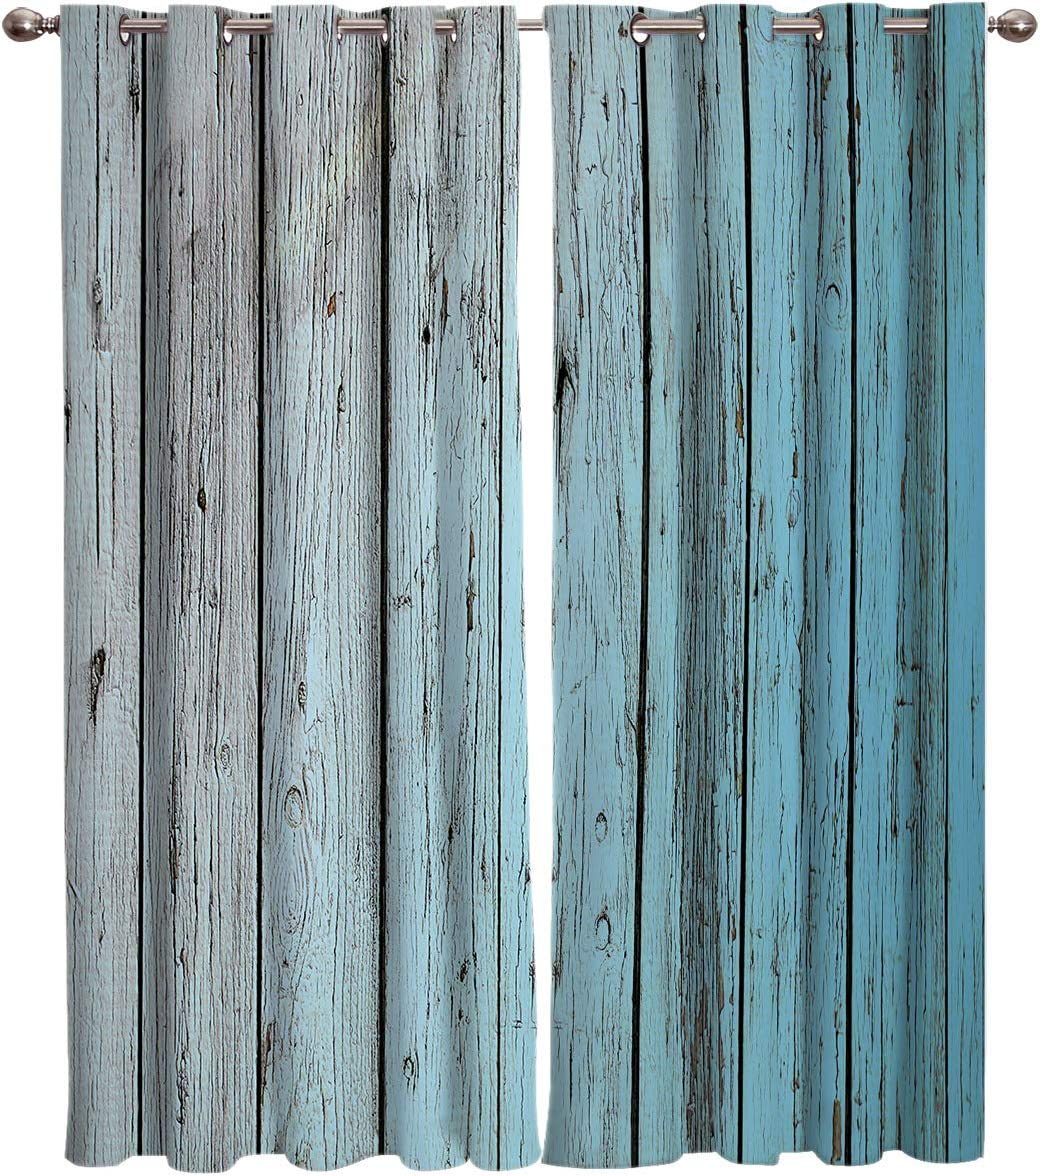 Printed House Vintage Old Barn Planks Home Decor Window Curtains - Window Treatment Set with Silver Grommet   Window Covering for Kitchen Cafe Living Room (2 Panel Drapes, 55